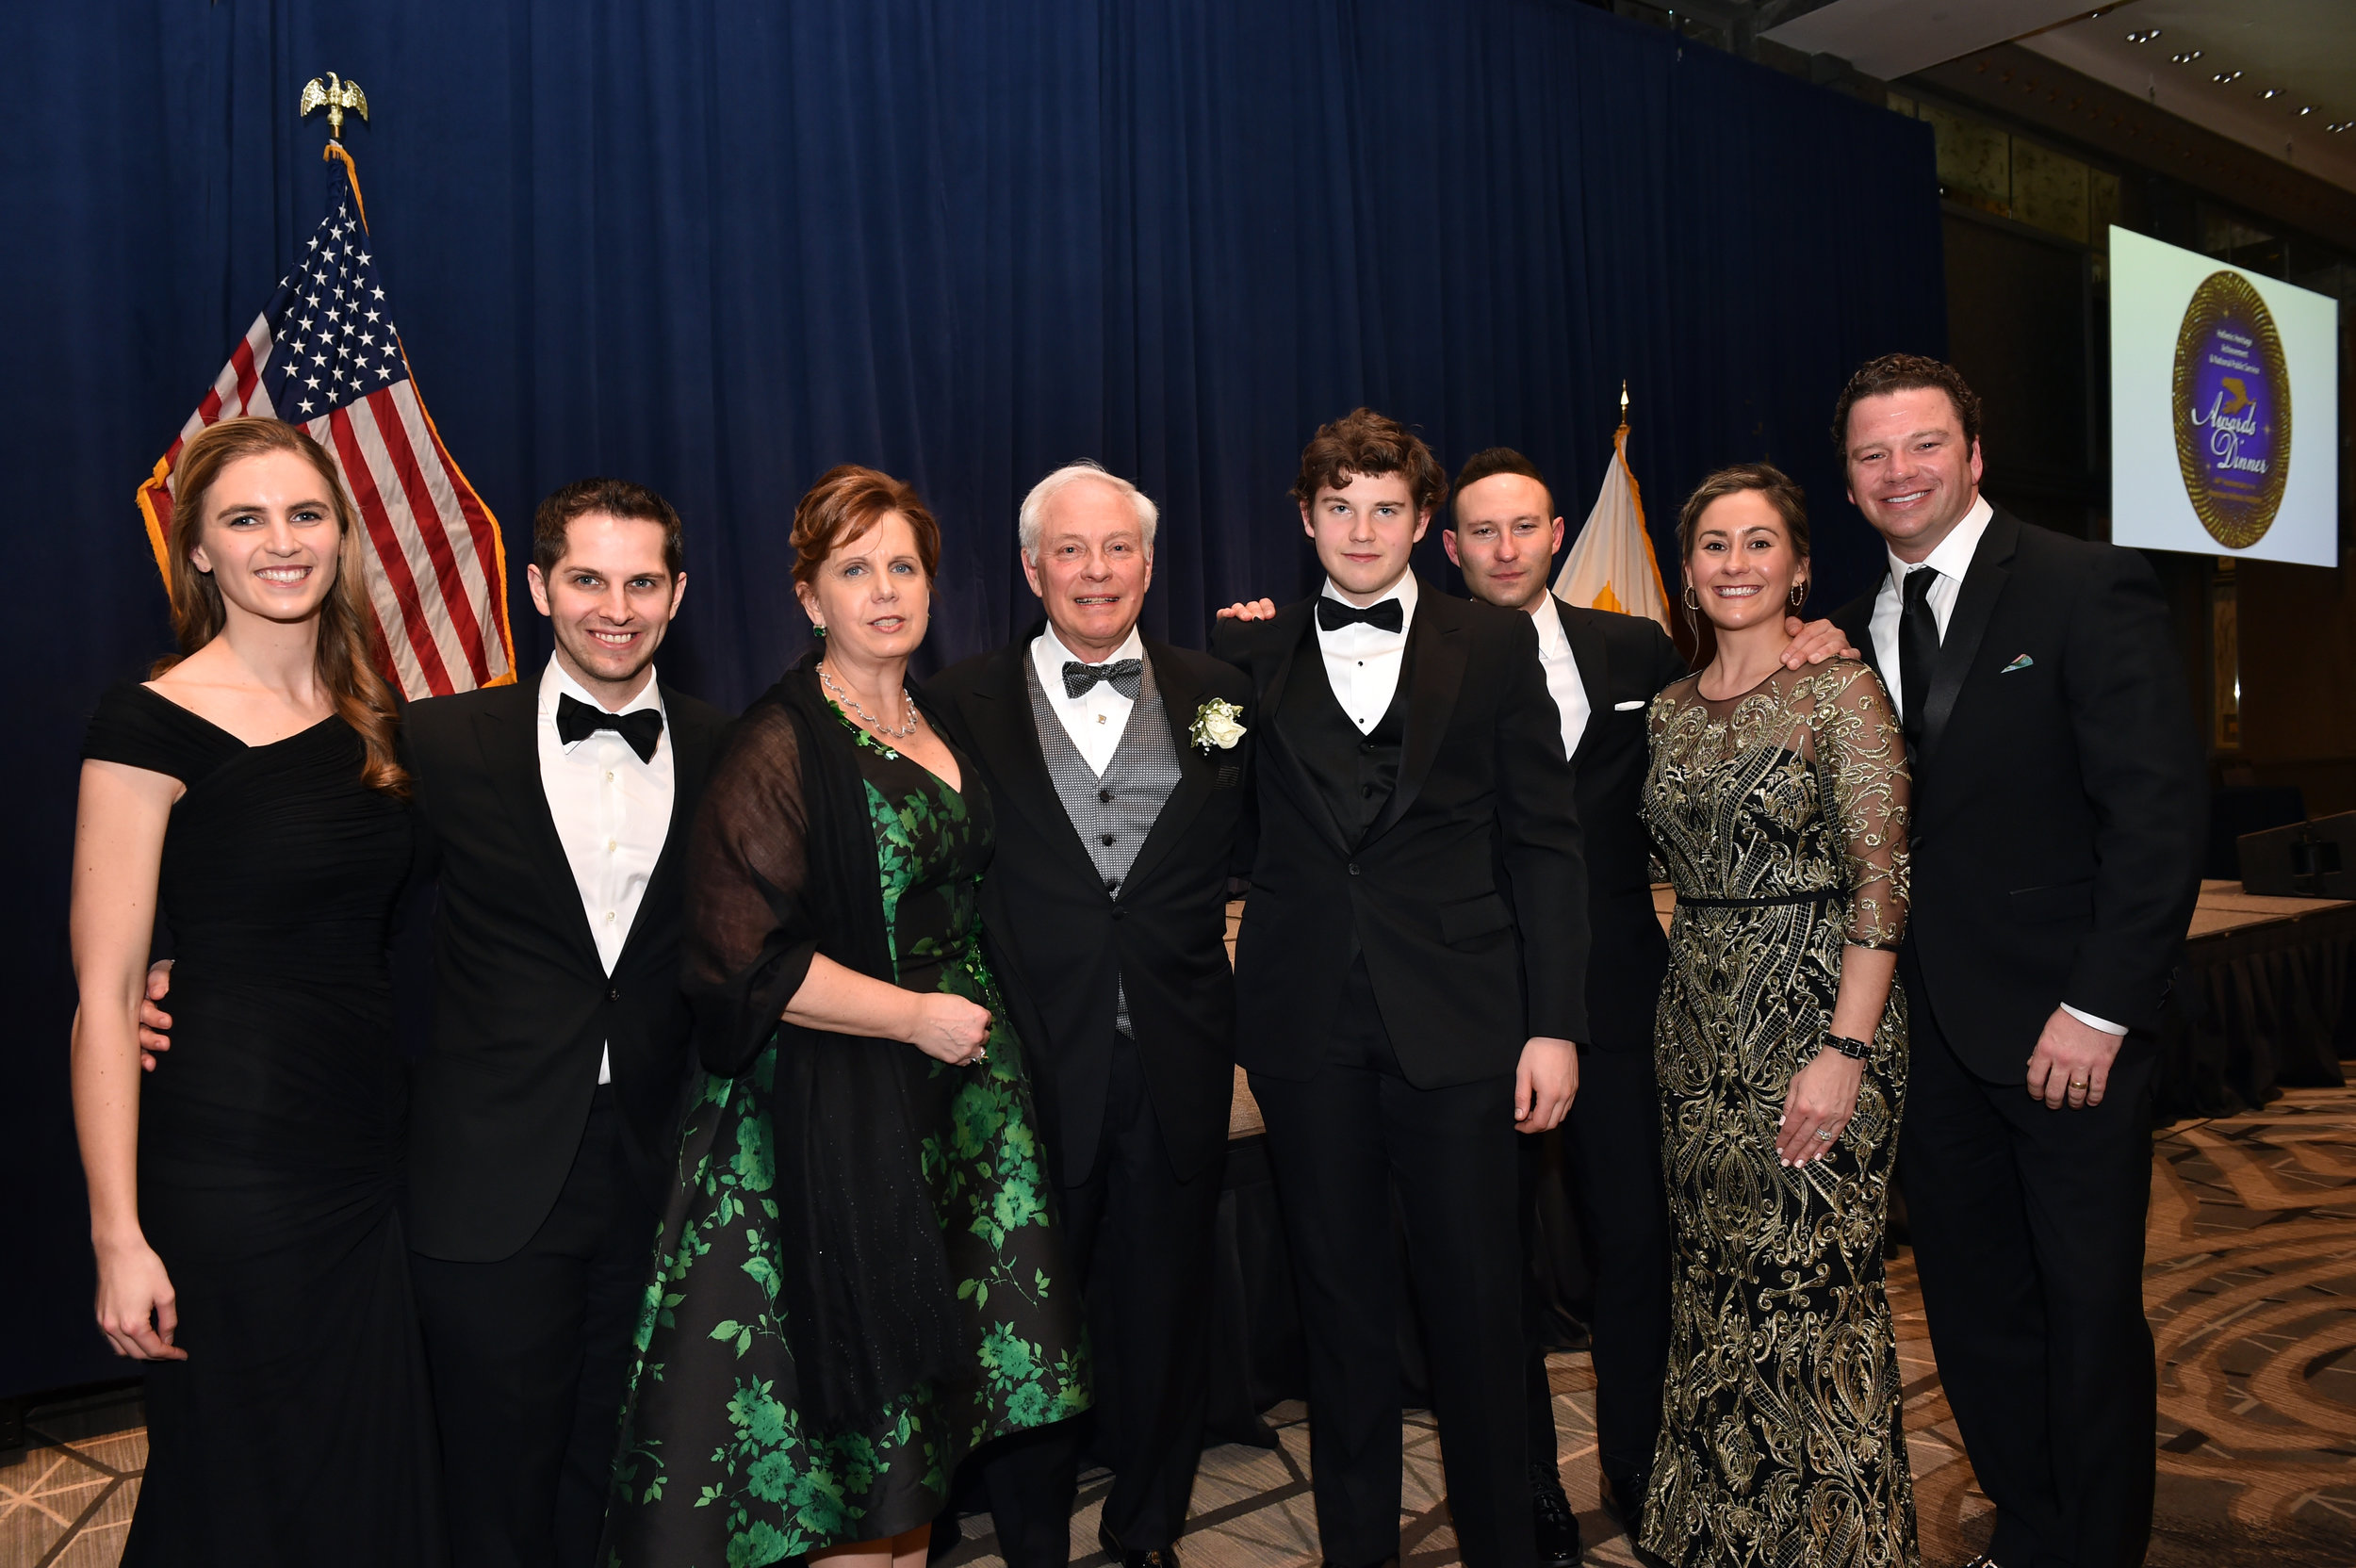 Honoree Nicholas Chimicles with friends and family